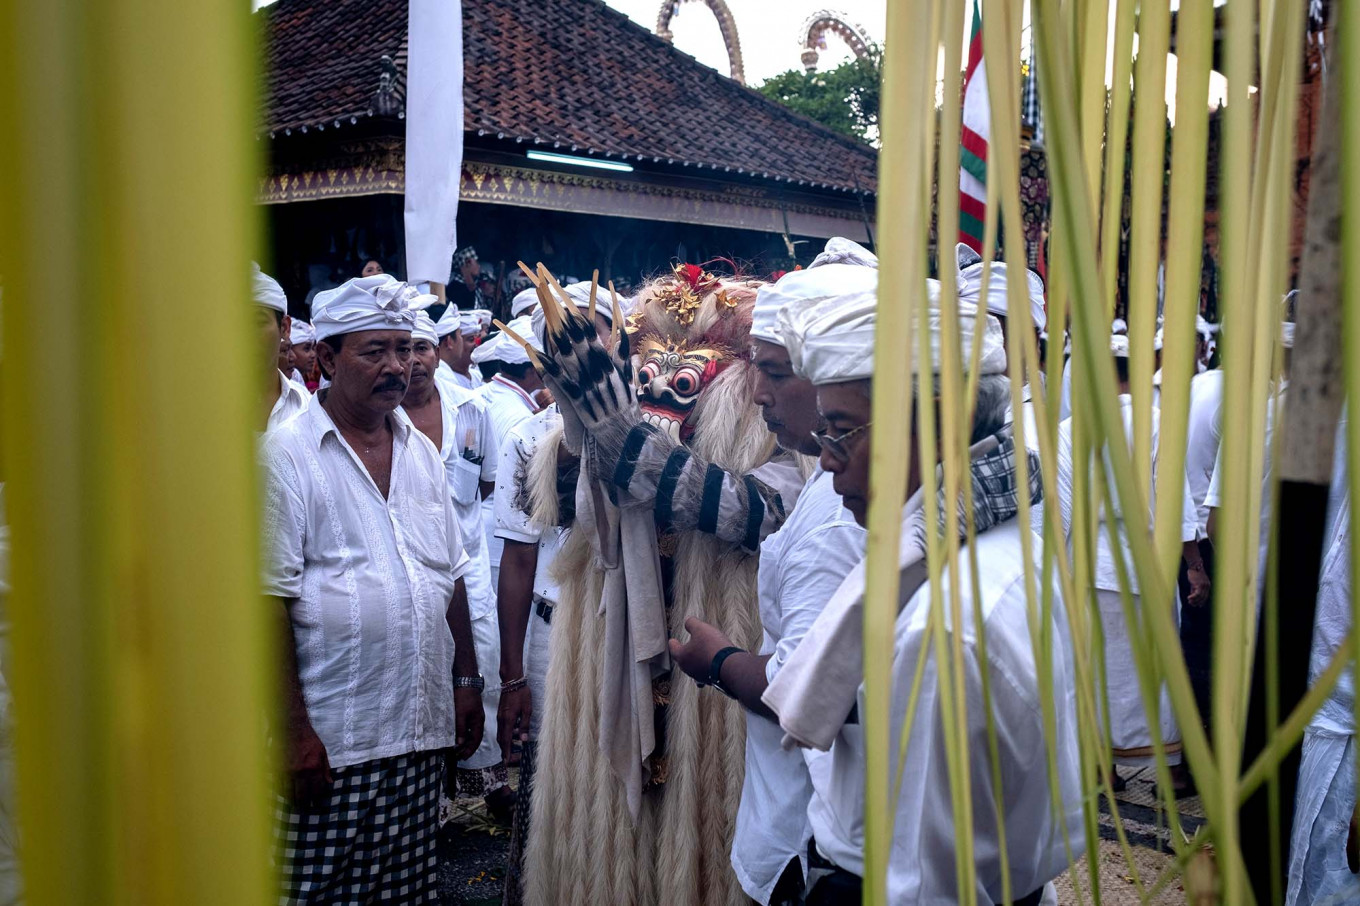 A Balinese man dances while wearing the Rangda during Ngerebong. Balinese Hindus evoke spirits to put them in a trance-like state during which many will push daggers into their chest and neck. JP/Agung Parameswara